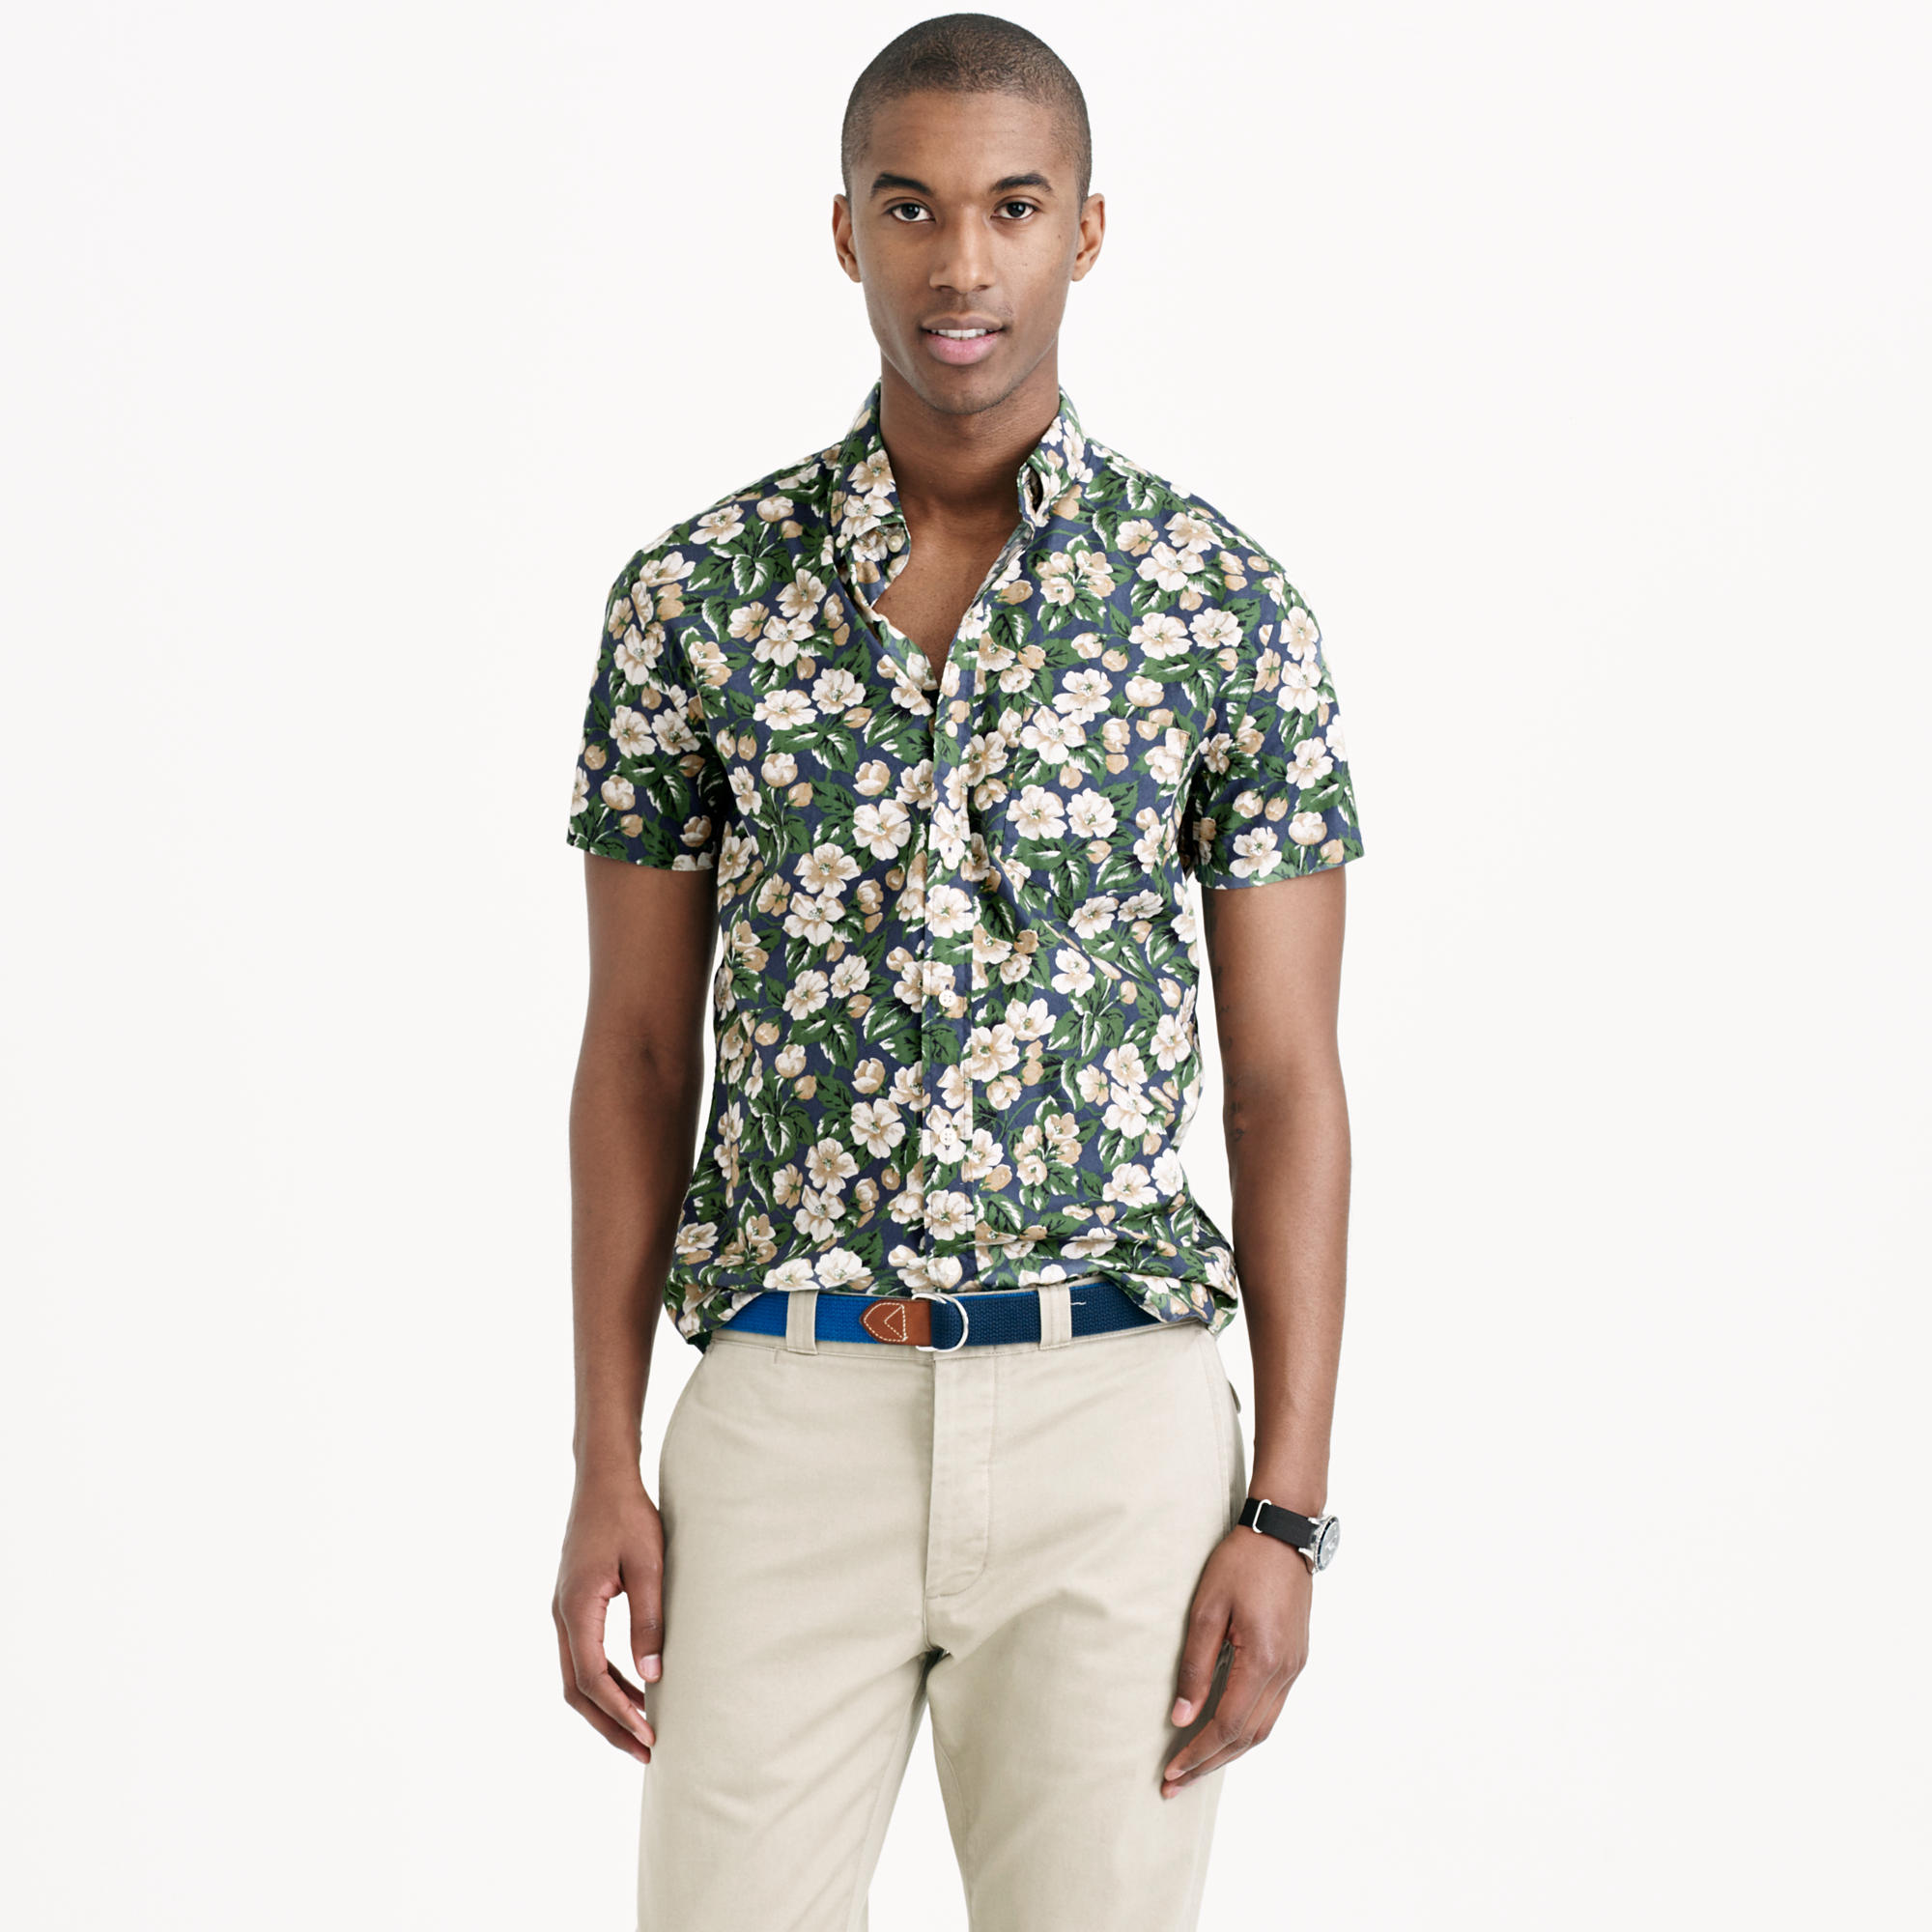 J.Crew Secret Wash Short-Sleeve Shirt in Faded Indigo Floral | Men's Prints